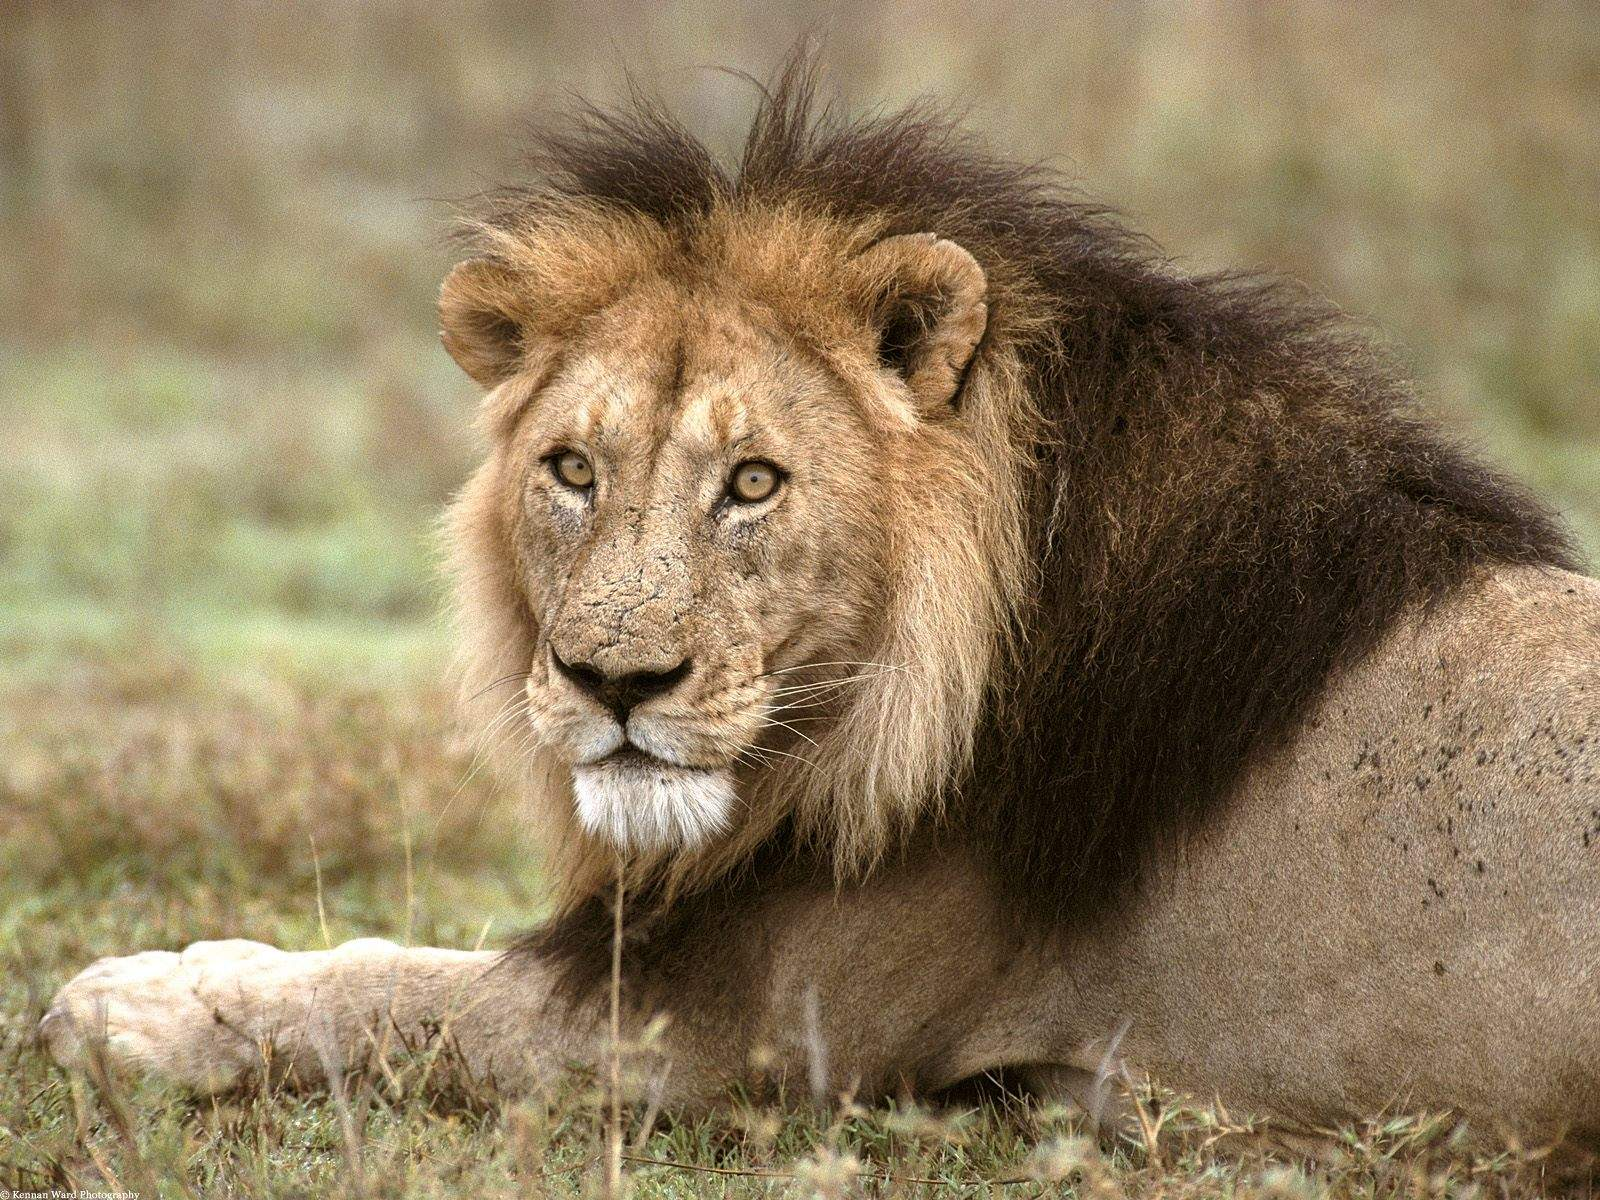 and White Wallpapers African Lion Tanzania Africa   Lion Wallpaper 1600x1200